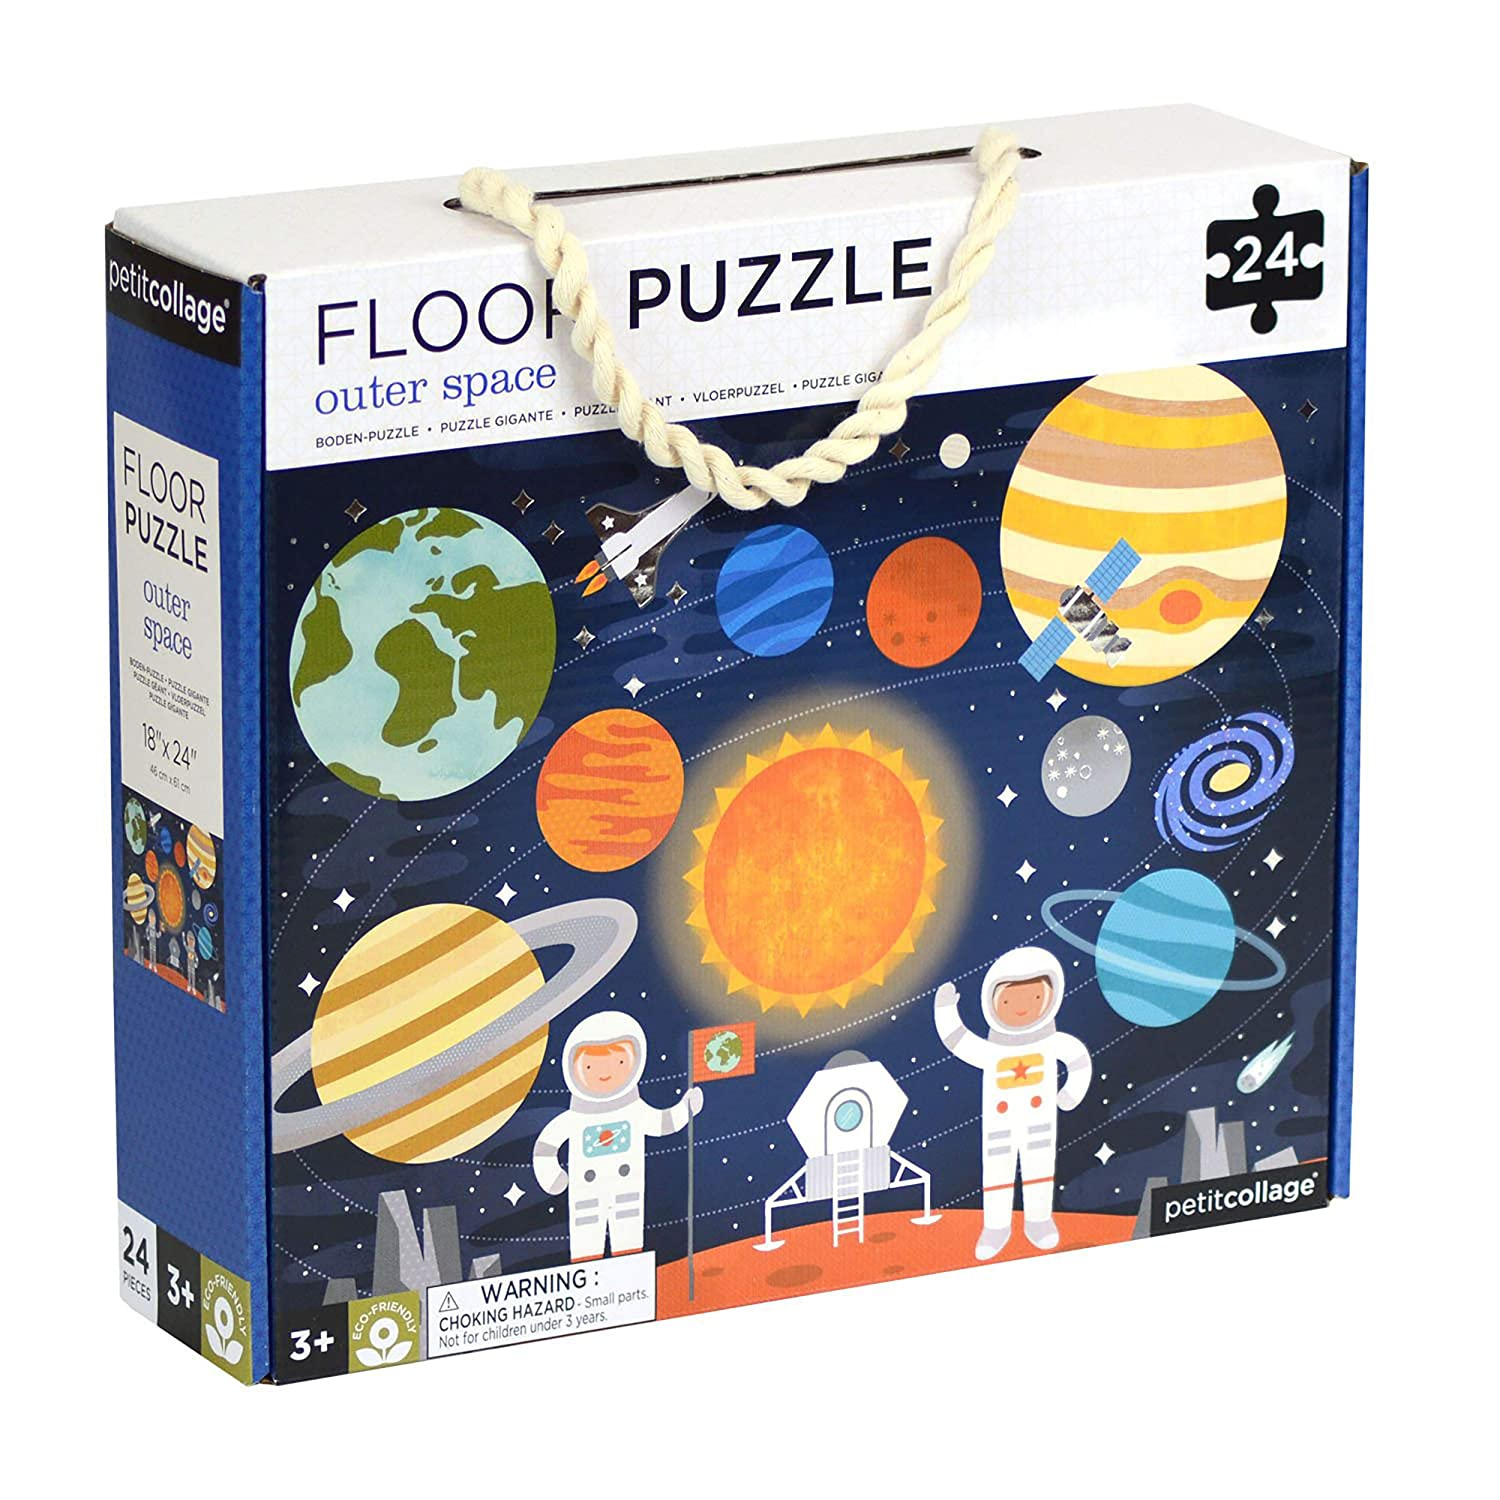 Floor Puzzle Outer Space